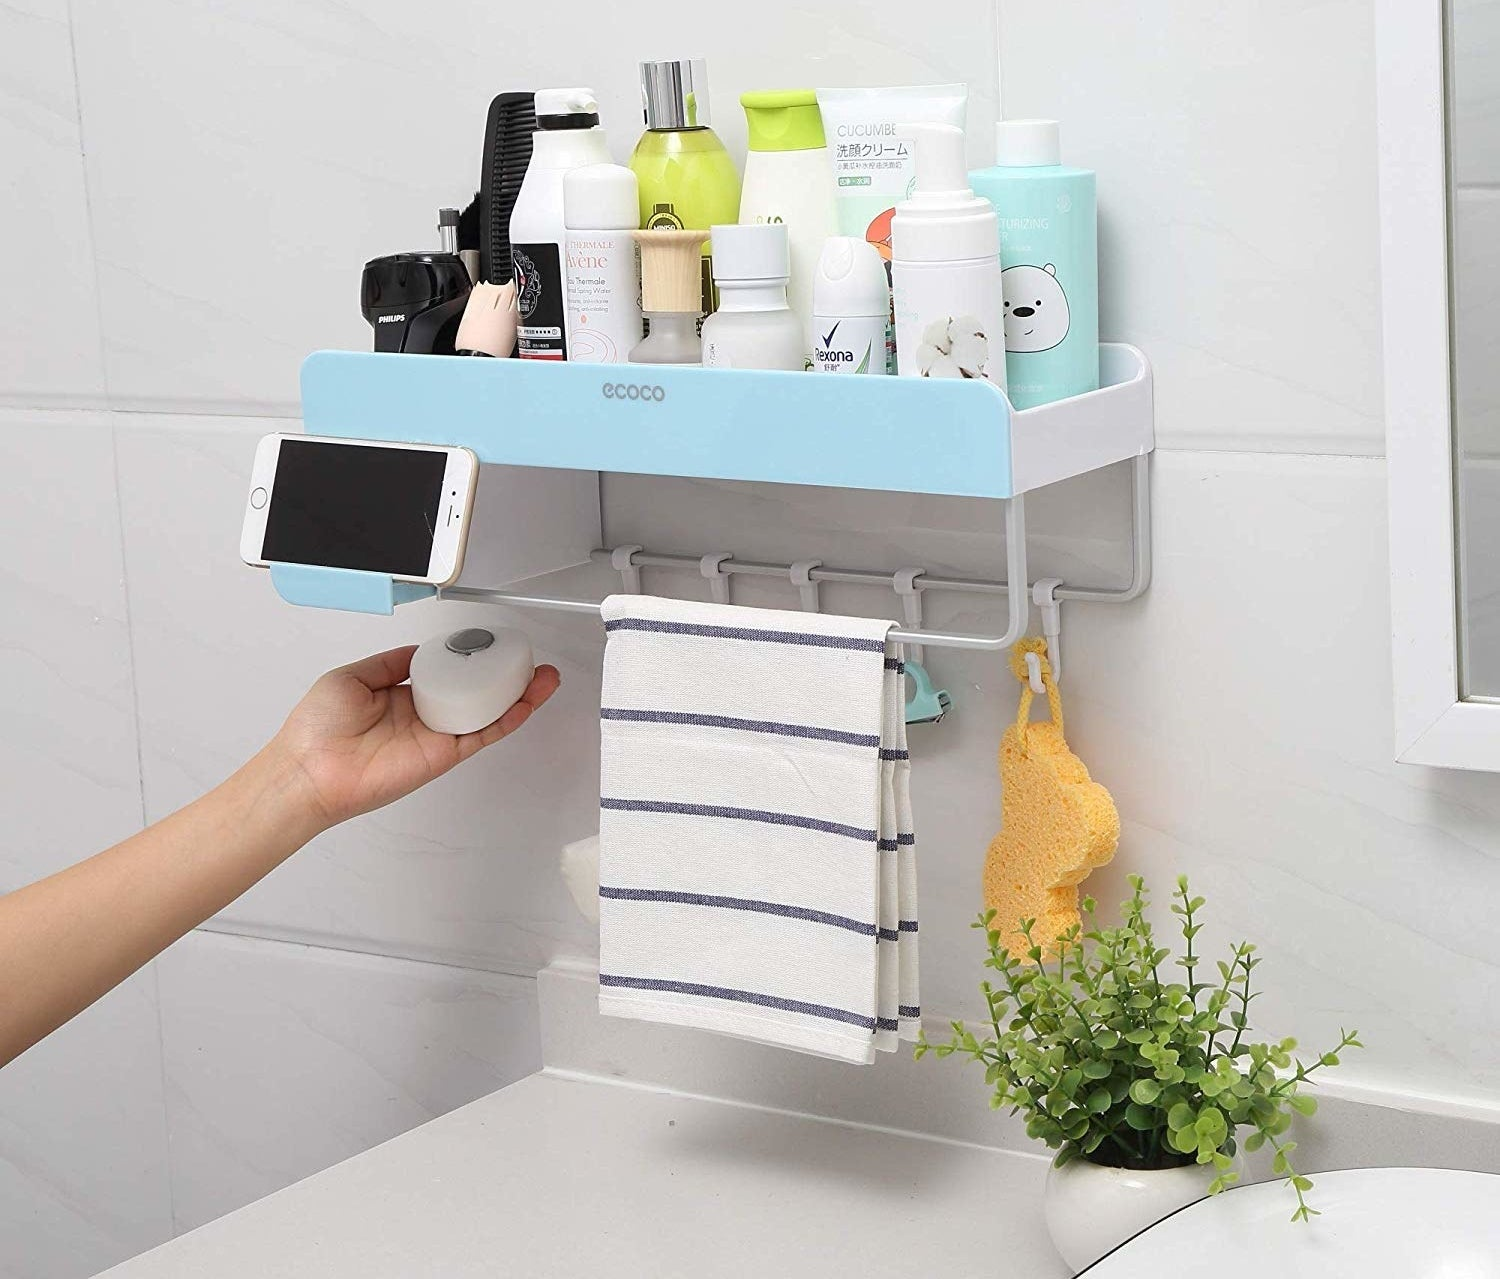 Storage organizer with top bin filled with products, hooks in the back and a tool rod in the front with a place to set a phone on the left side